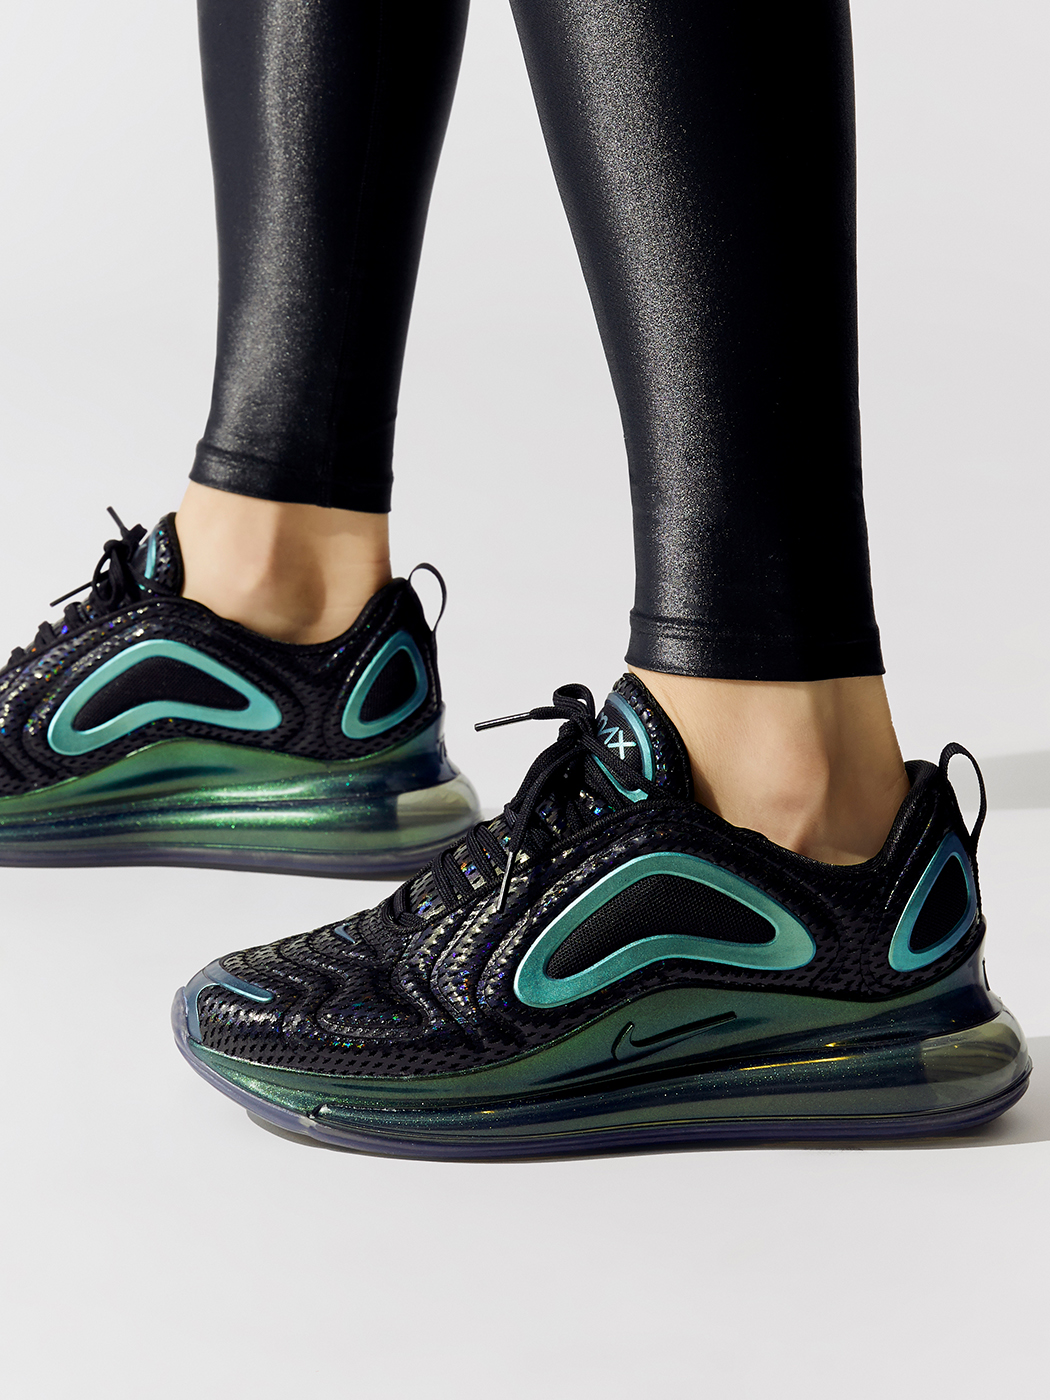 Nike Women's Air Max 720 BlackBlack metallic silver